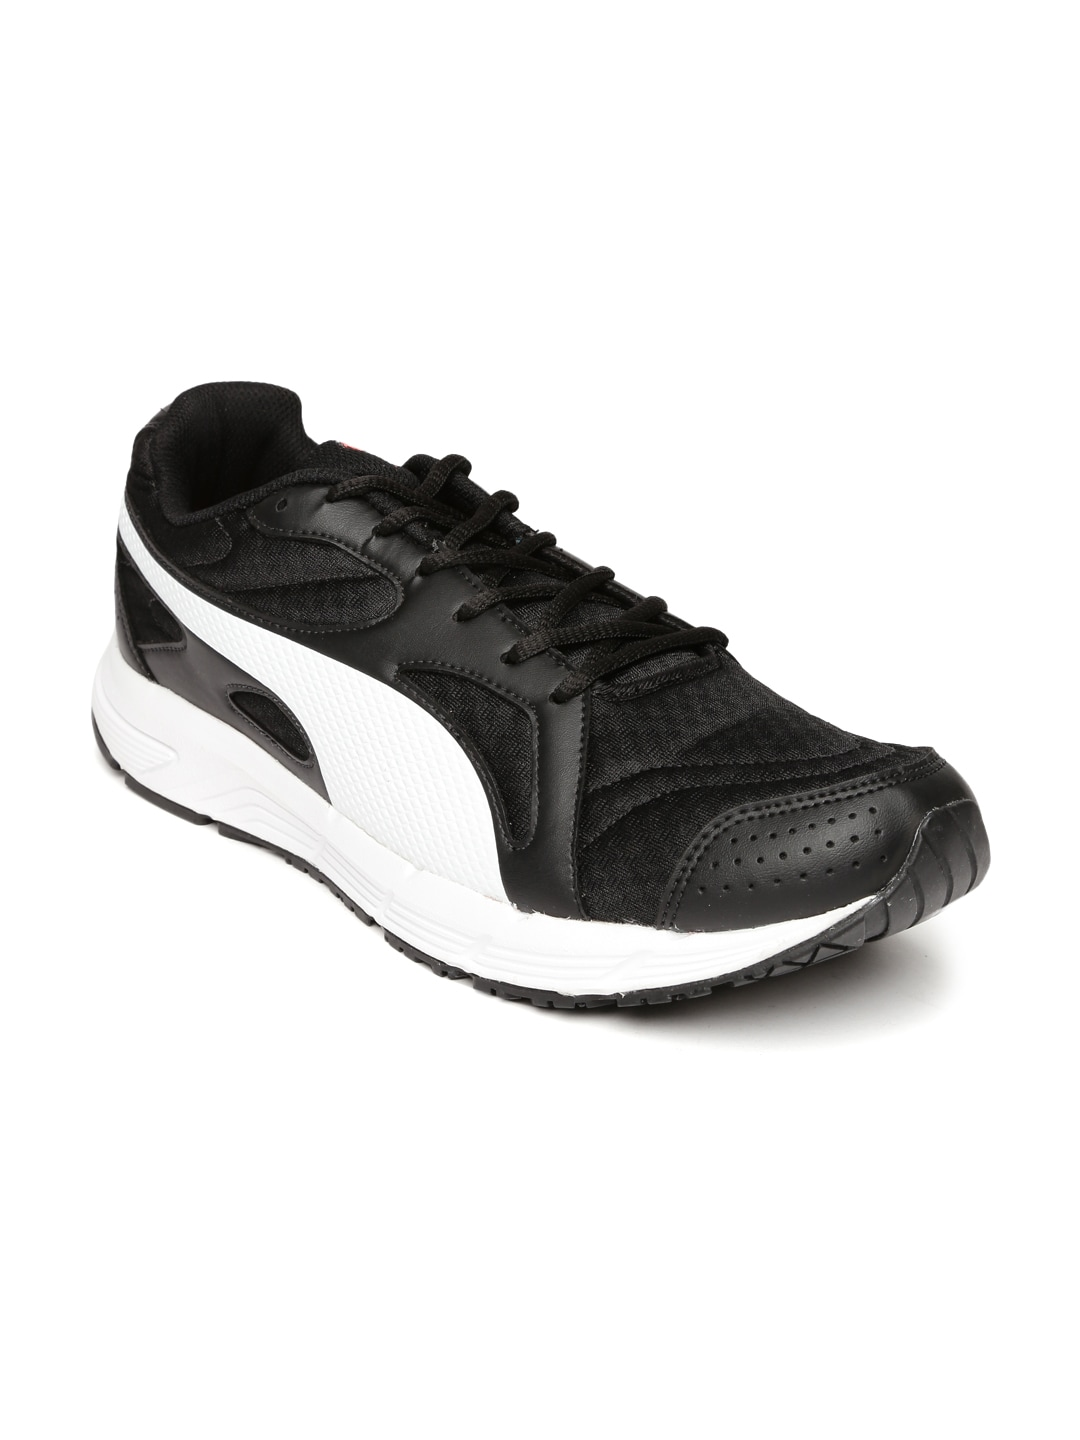 692f641e114 Puma Shoes - Buy Puma Shoes for Men   Women Online in India